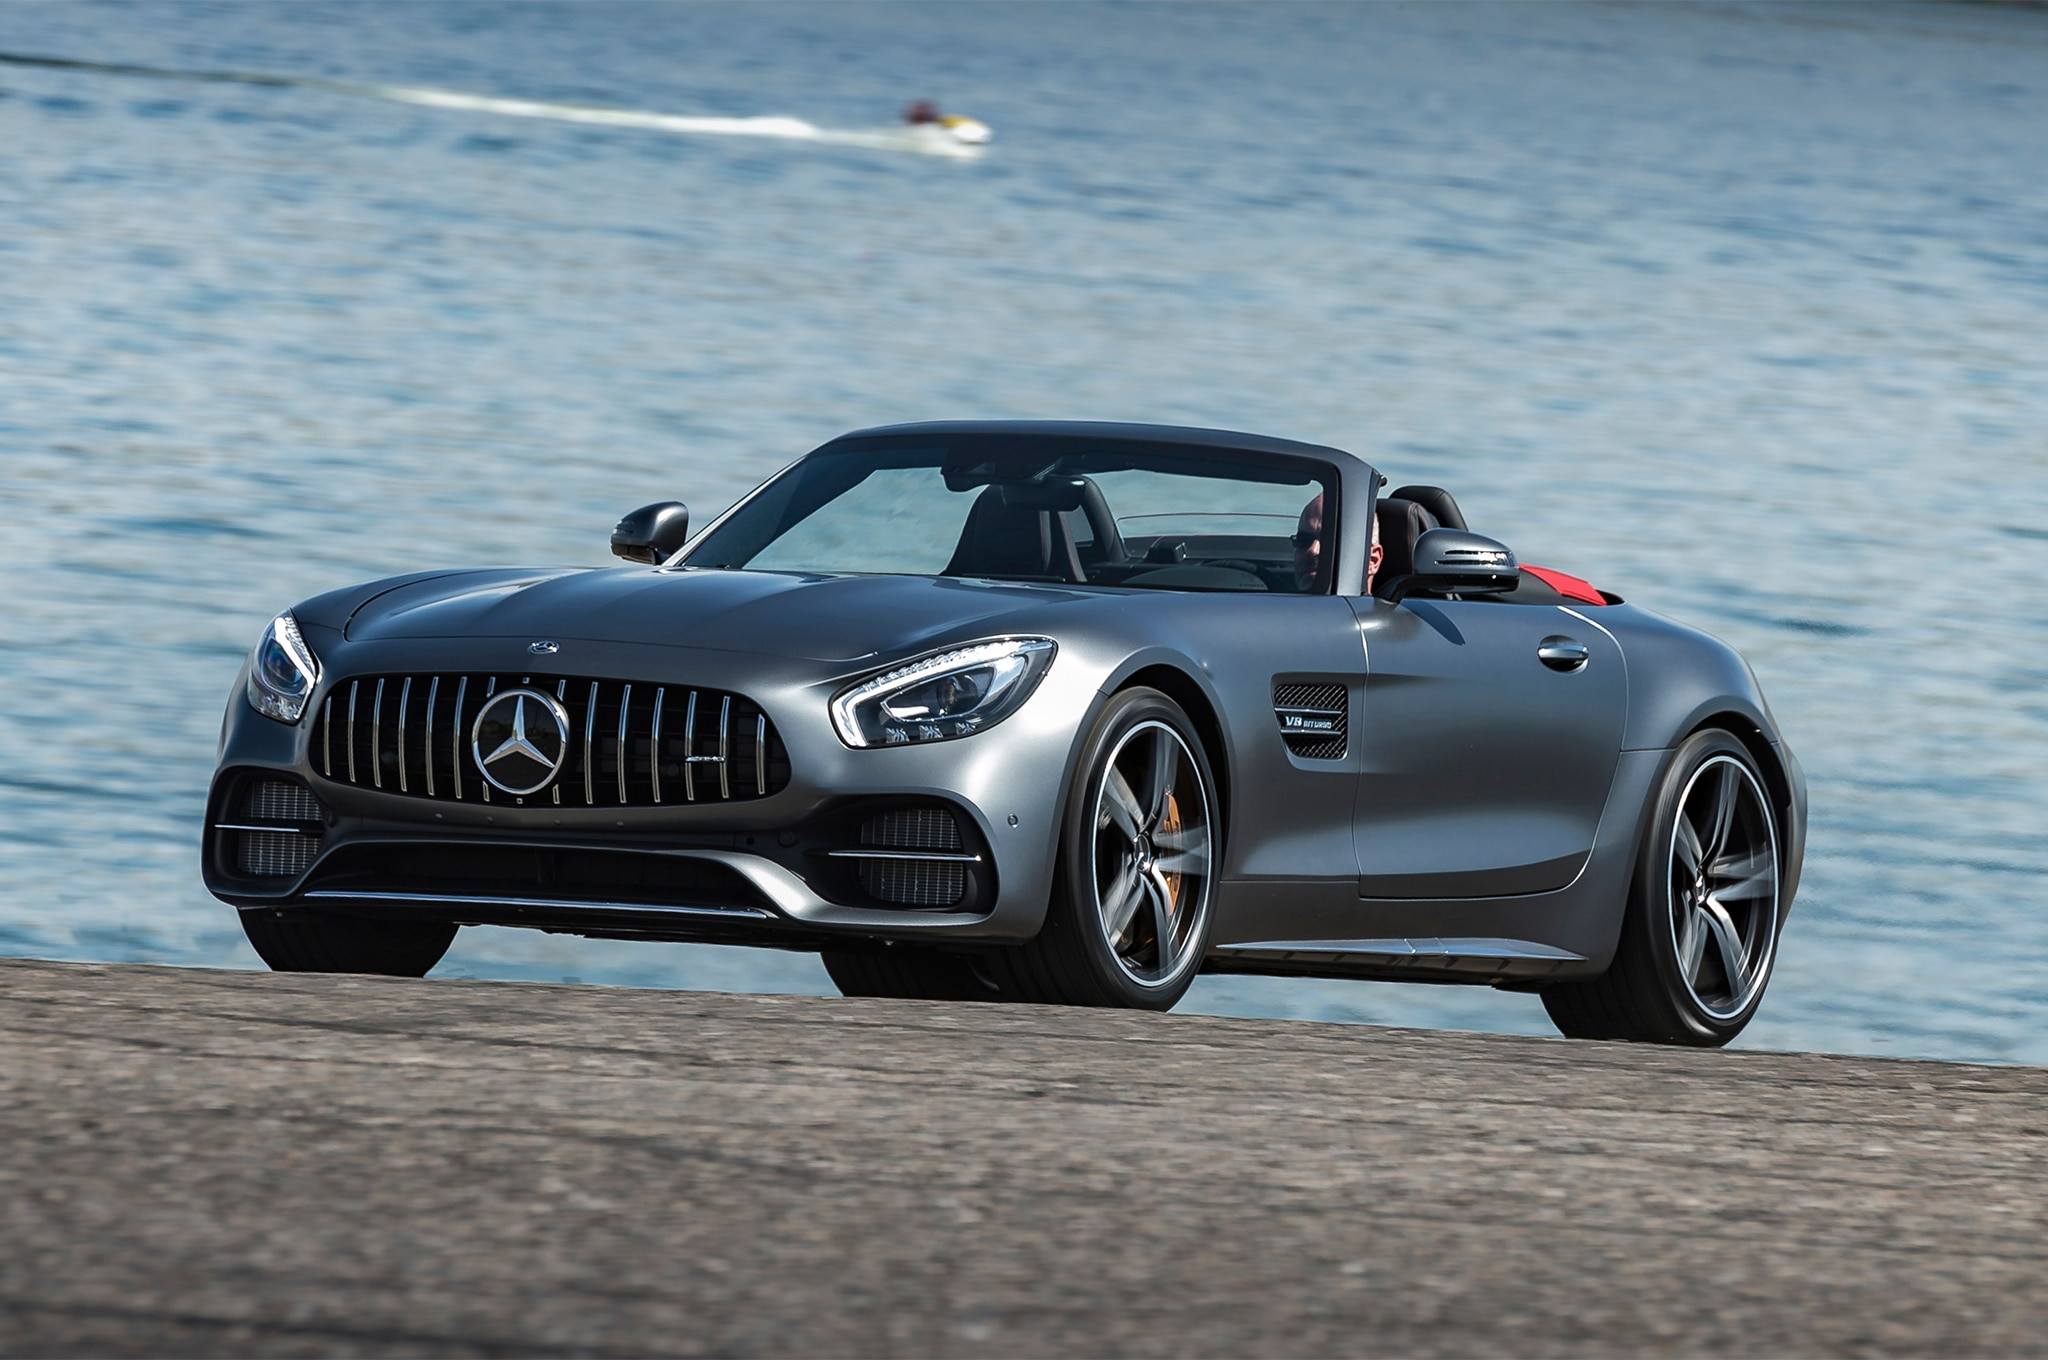 https://st.automobilemag.com/uploads/sites/11/2017/03/2018-Mercedes-AMG-GT-C-Roadster-front-three-quarter-in-motion-08.jpg